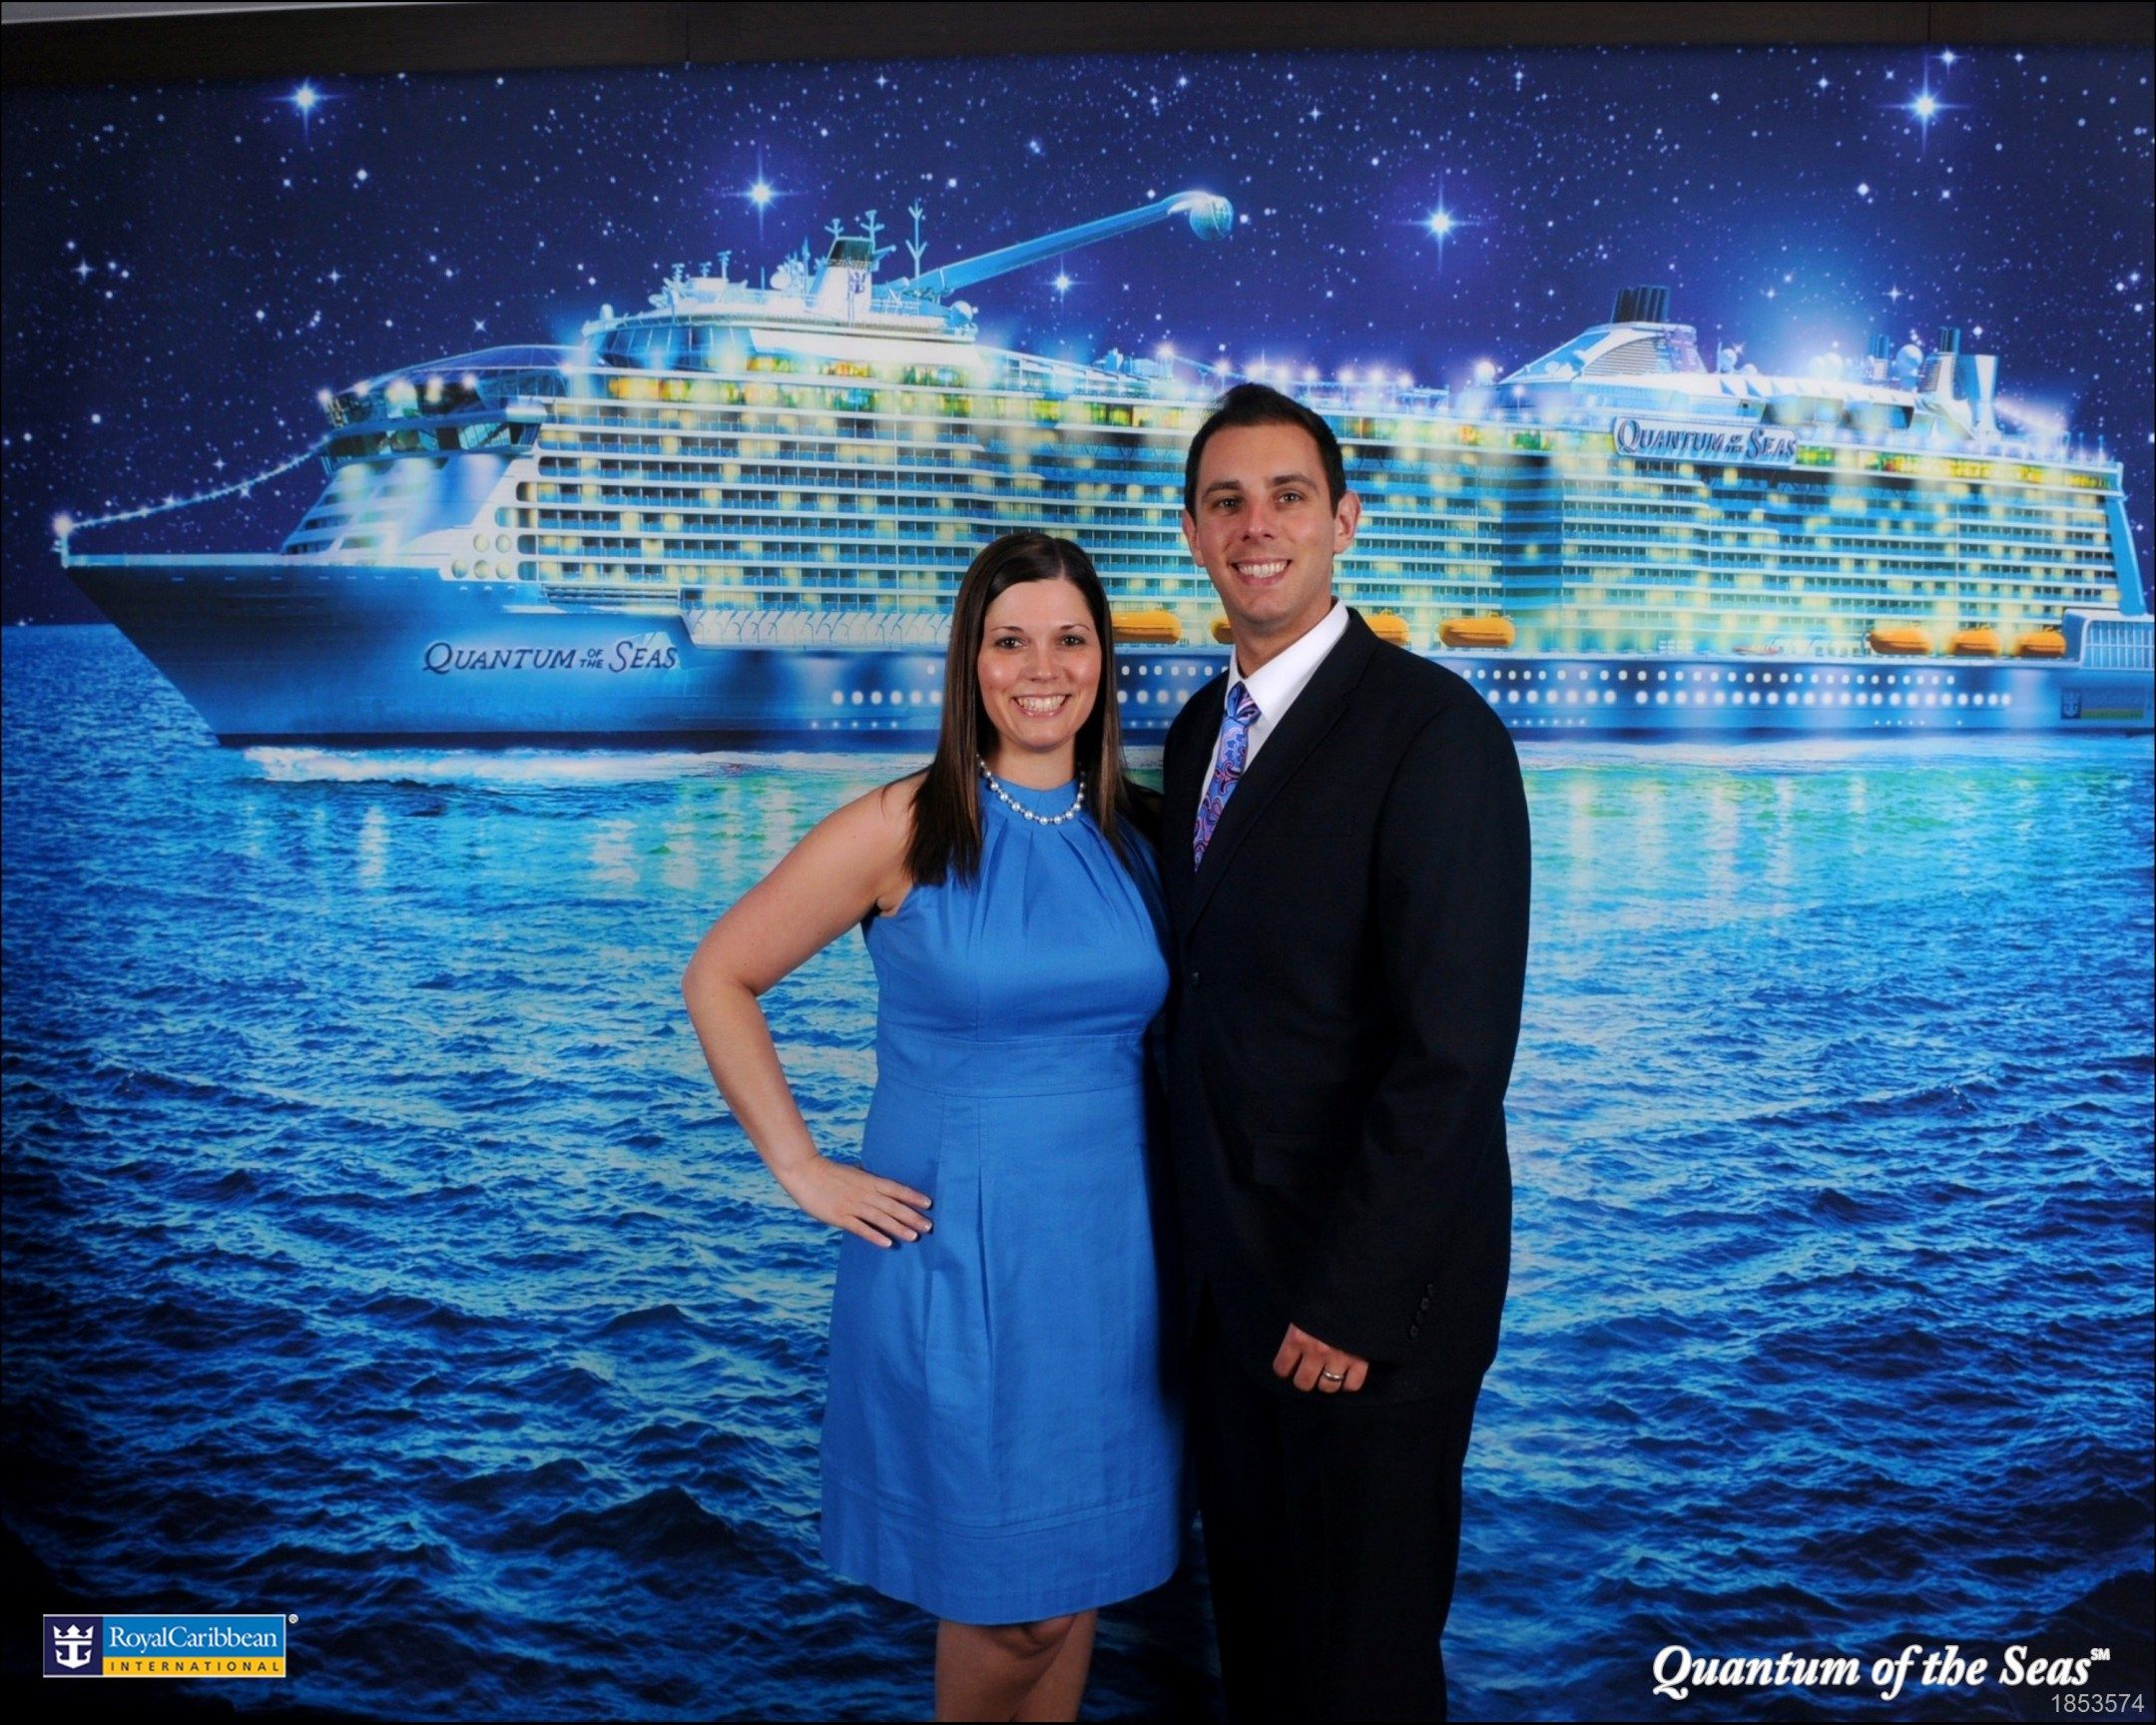 Cruise Formal Night Why You Should Dress Up Cruise Formal Night Cruise Outfits Carnival Cruise Dress Formal